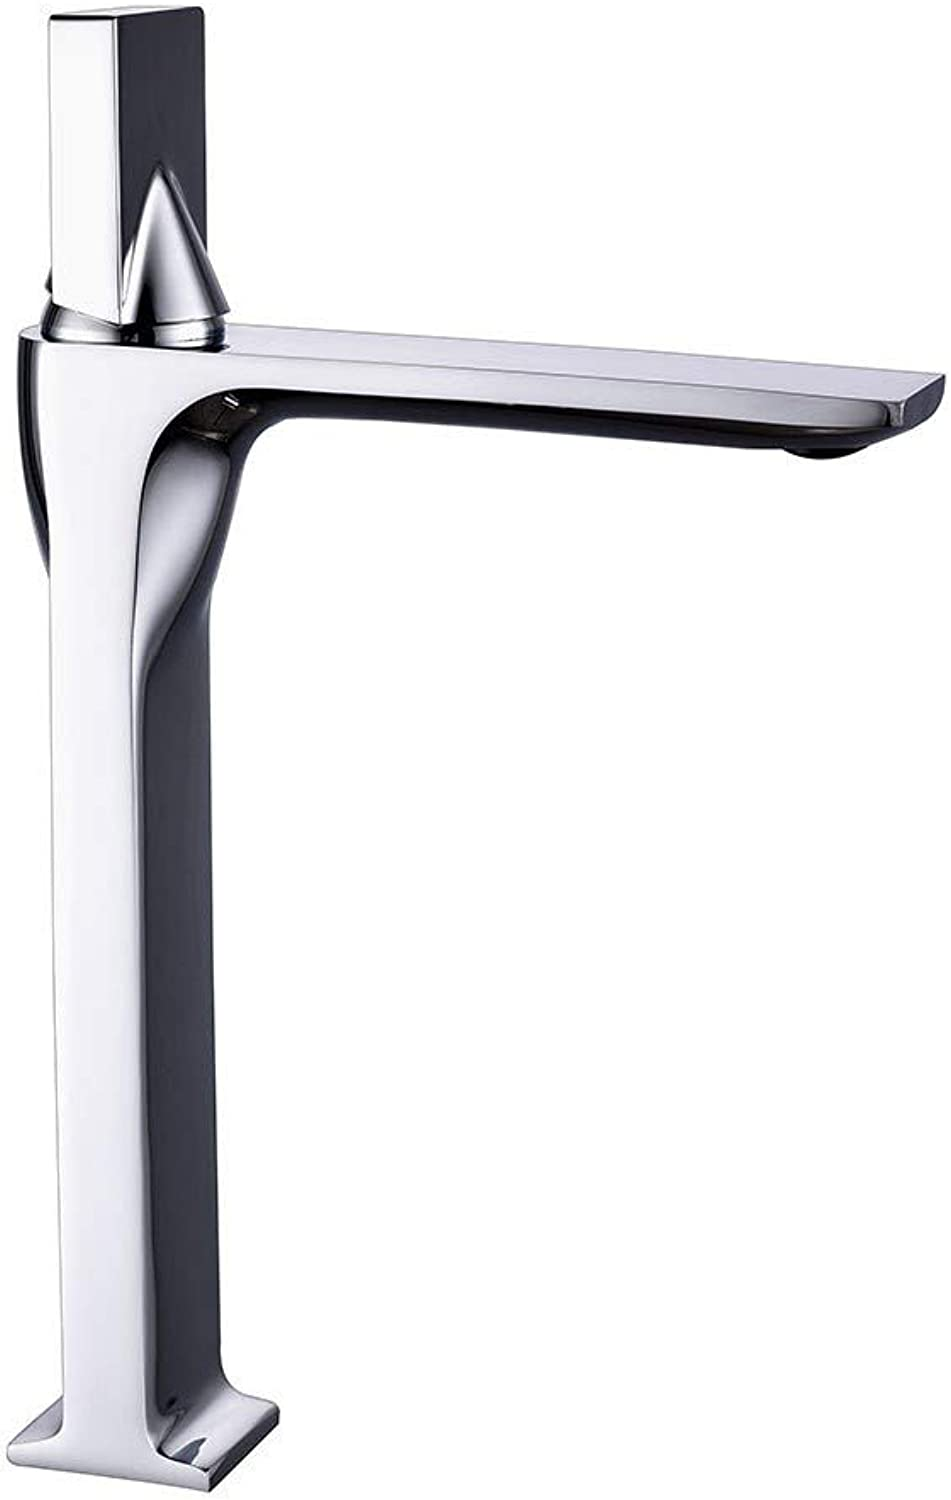 Bionmceu Bathroom Sink Taps Blender Creative Mixing Faucet Modern Chrome Coating Brass Bathroom Mirror Effect Single Handle Faucet